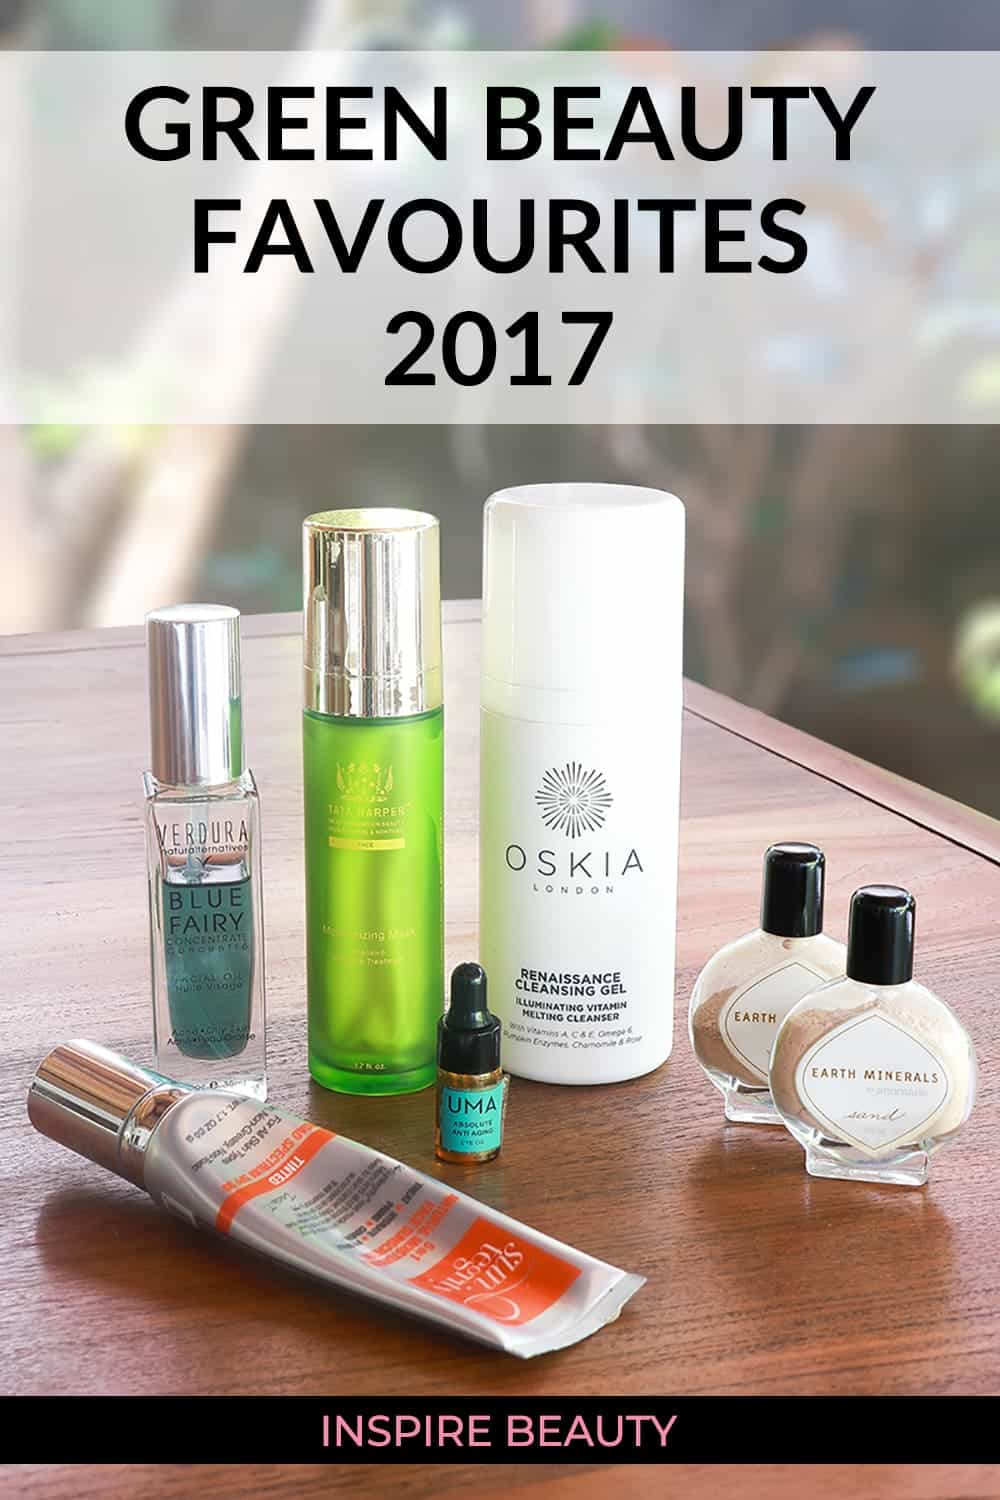 Green beauty favourites review featuring products from Tata Harper, Oskia, Suntegrity, Annmarie Skin Care, VERDURA naturalternatives, and Uma Oils.